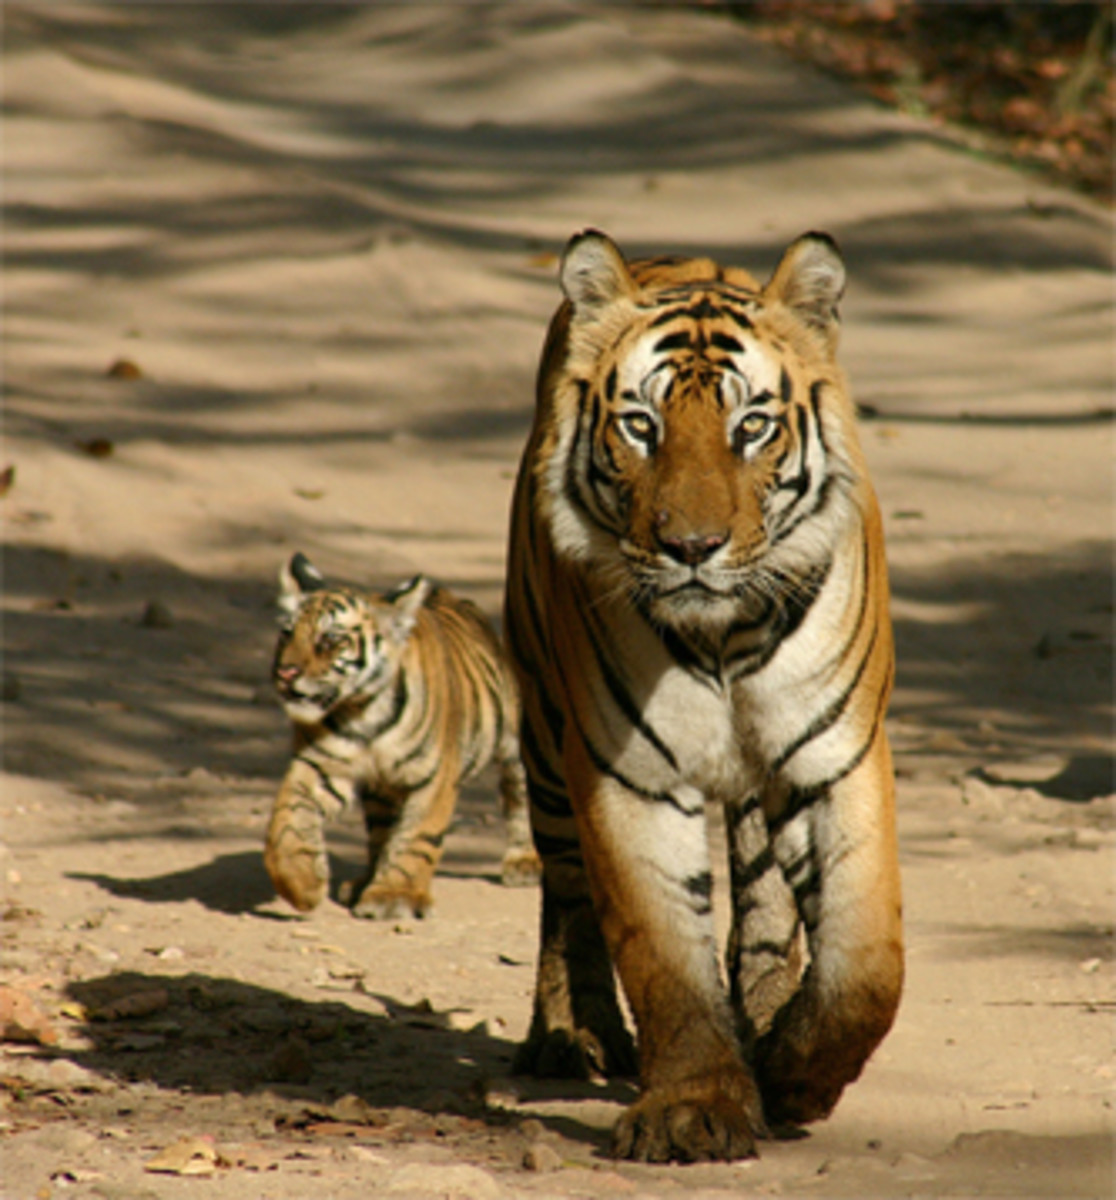 You can see wild tigers in many of India's national parks